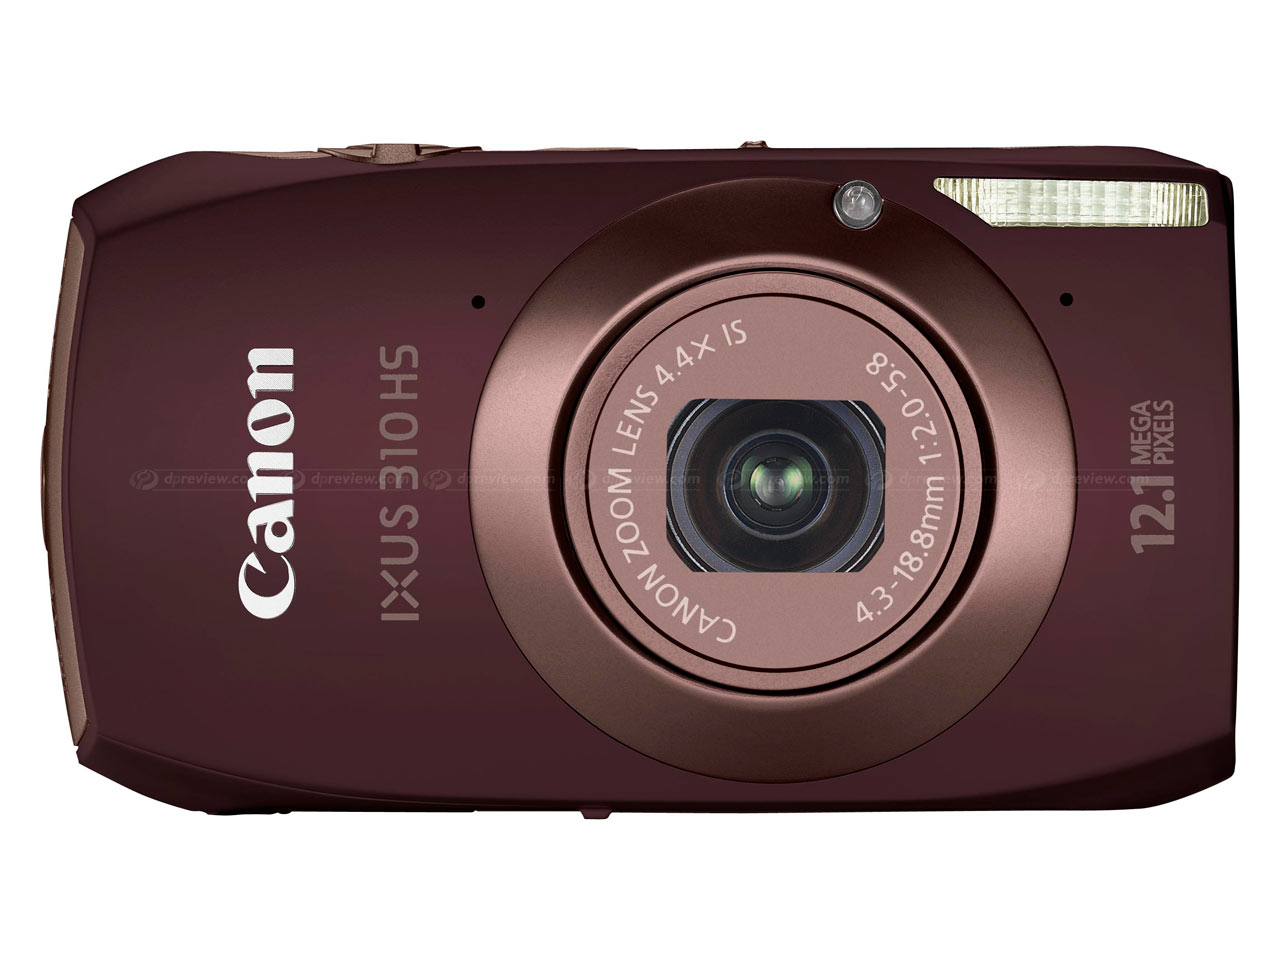 canon releases elph 500 hs ixus 310 hs compact with manual control rh dpreview com canon powershot elph 310 hs manual pdf canon powershot elph 310 hs manual pdf